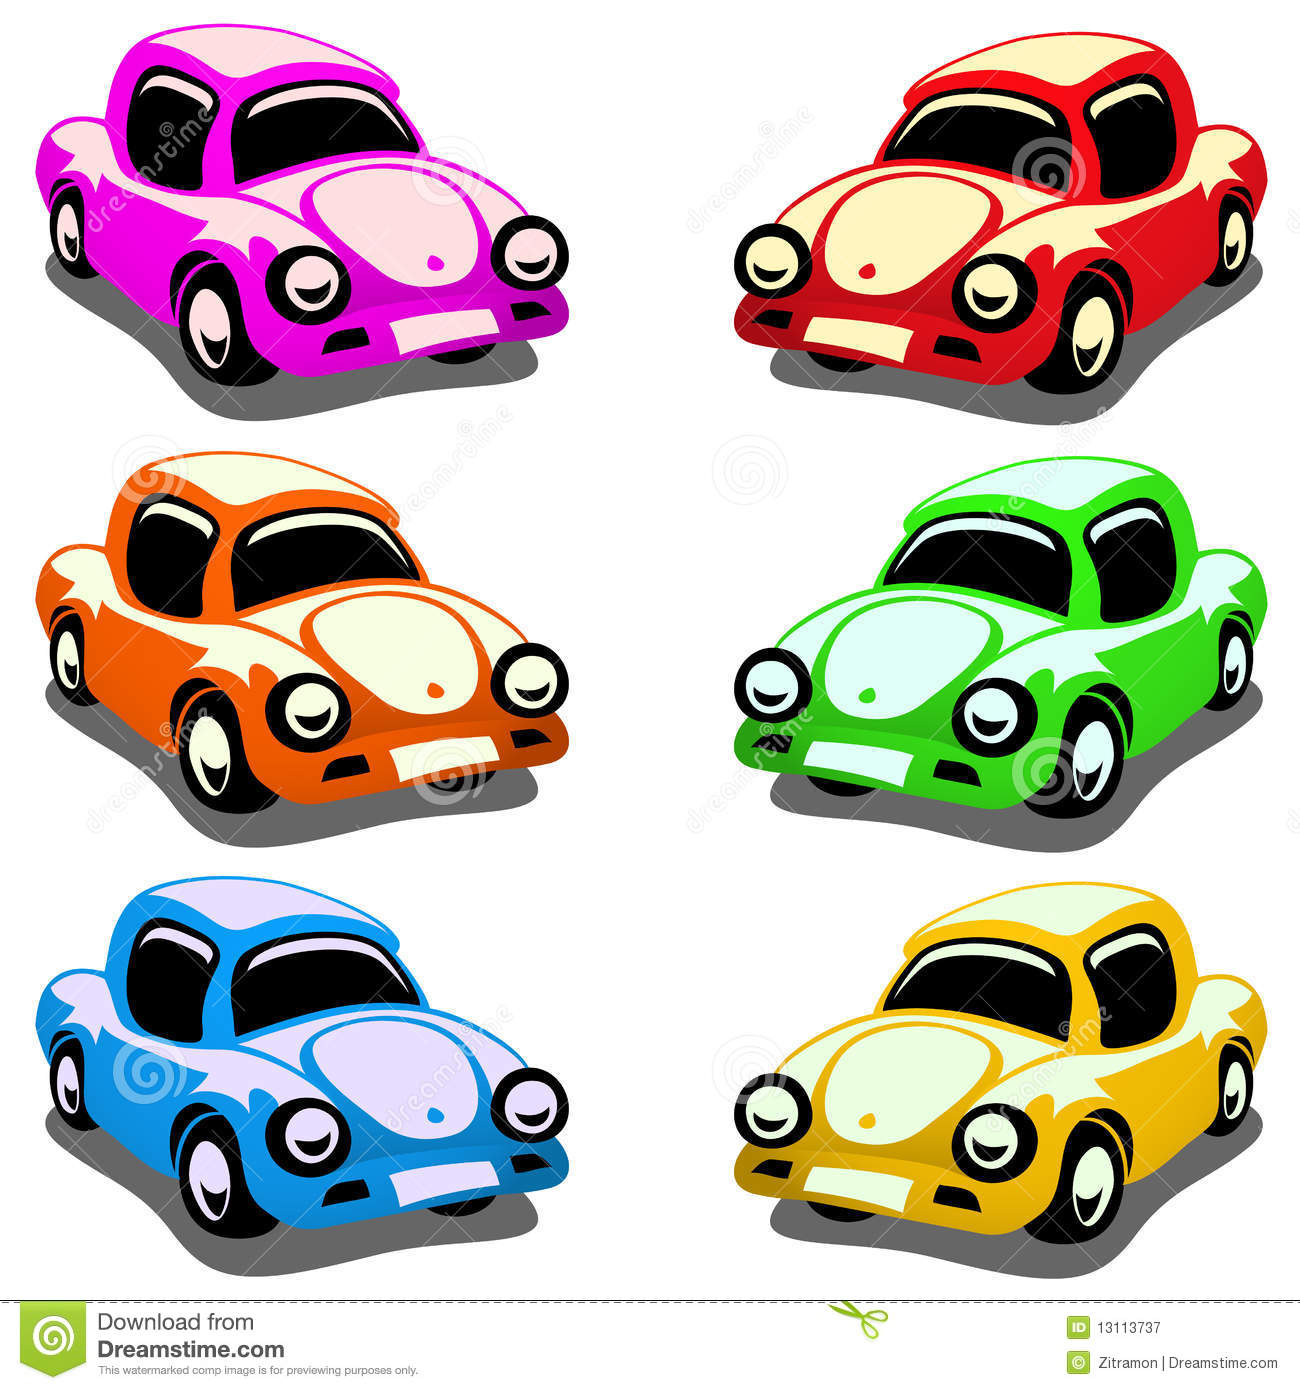 toy racecar with Royalty Free Stock Photography Toy Cars Image13113737 on Coloring Pages Race Cars further 221933849346 likewise 790263 also Racecar Cupcakes in addition Watch.